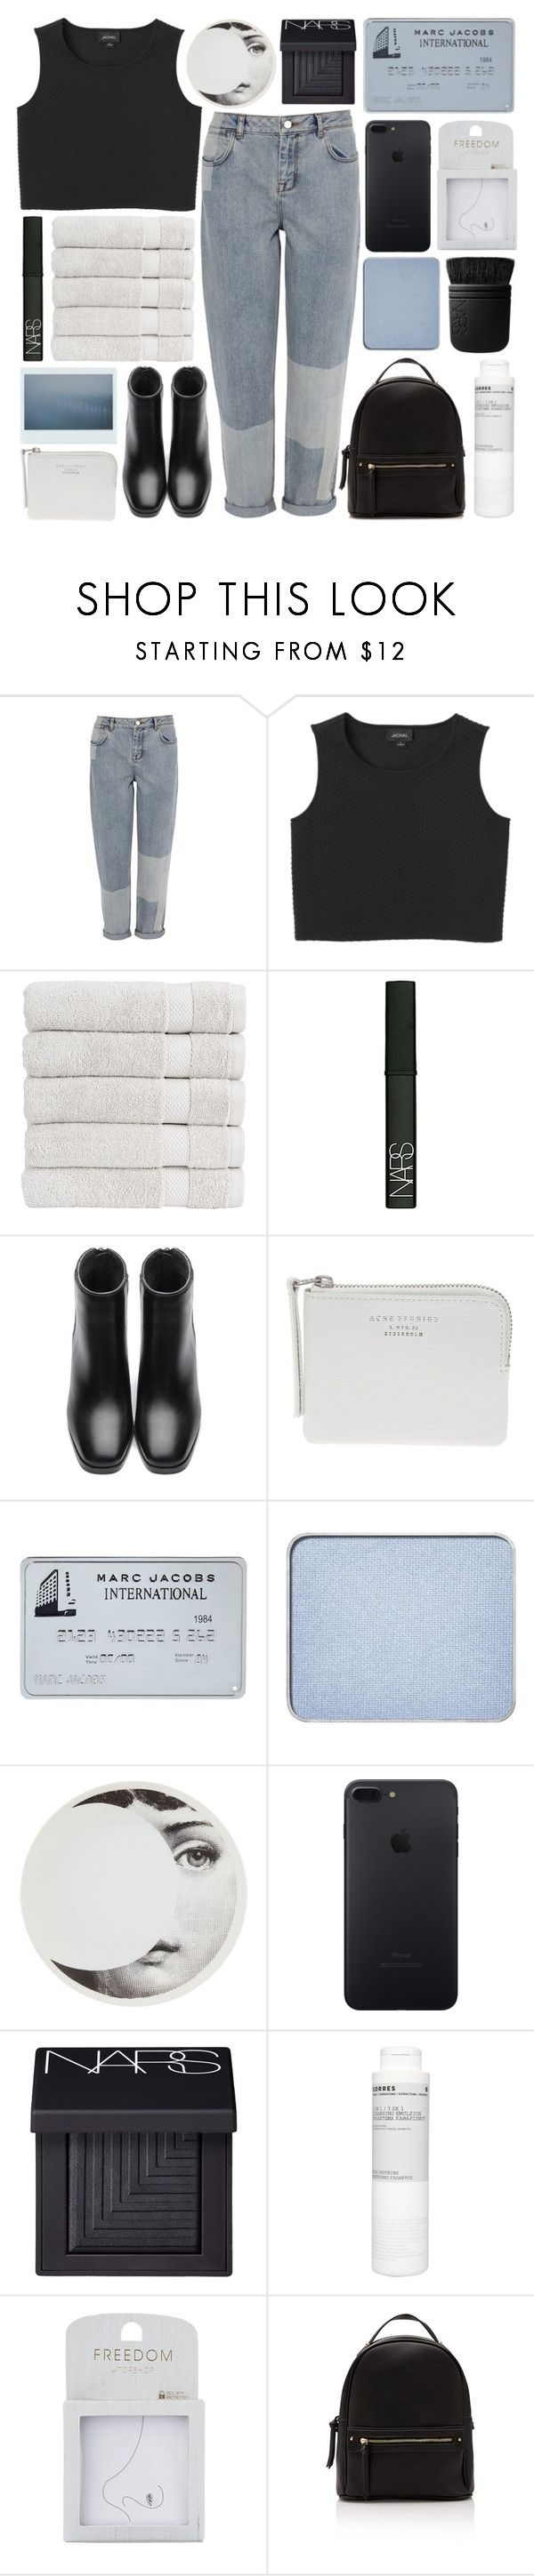 """CARRY THE CROWN"" by glowing-eyes ❤ liked on Polyvore featuring Karen Millen, Monki, Christy, NARS Cosmetics, Acne Studios, shu uemura, Fornasetti, Korres and Topshop"